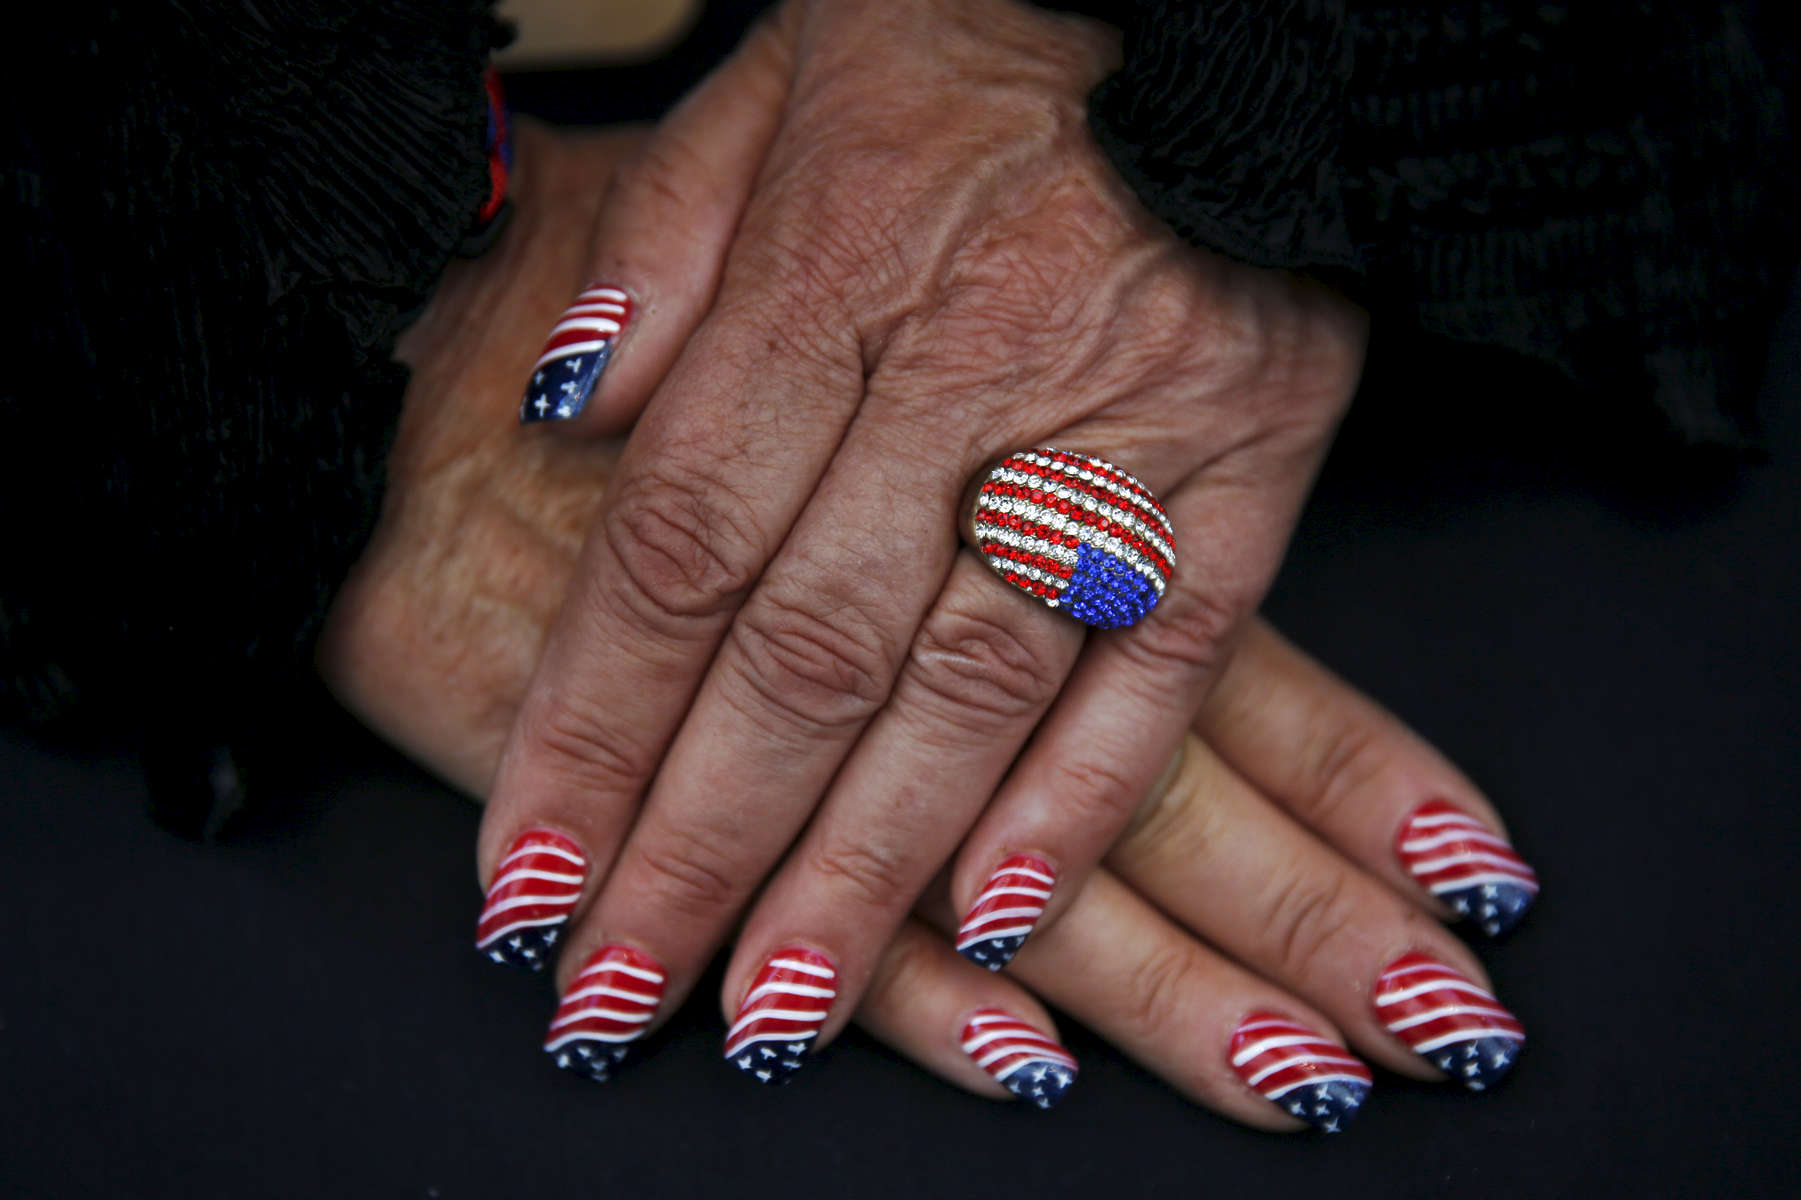 Elizabeth Ritchie with the California Federation of Republican Women shows off her custom nail job for a photograph during the second day of the California Republican Party Convention which featured a speech from Presidential candidate Ted Cruz April 30, 2016 at the Hyatt Regency in Burlingame, Calif.